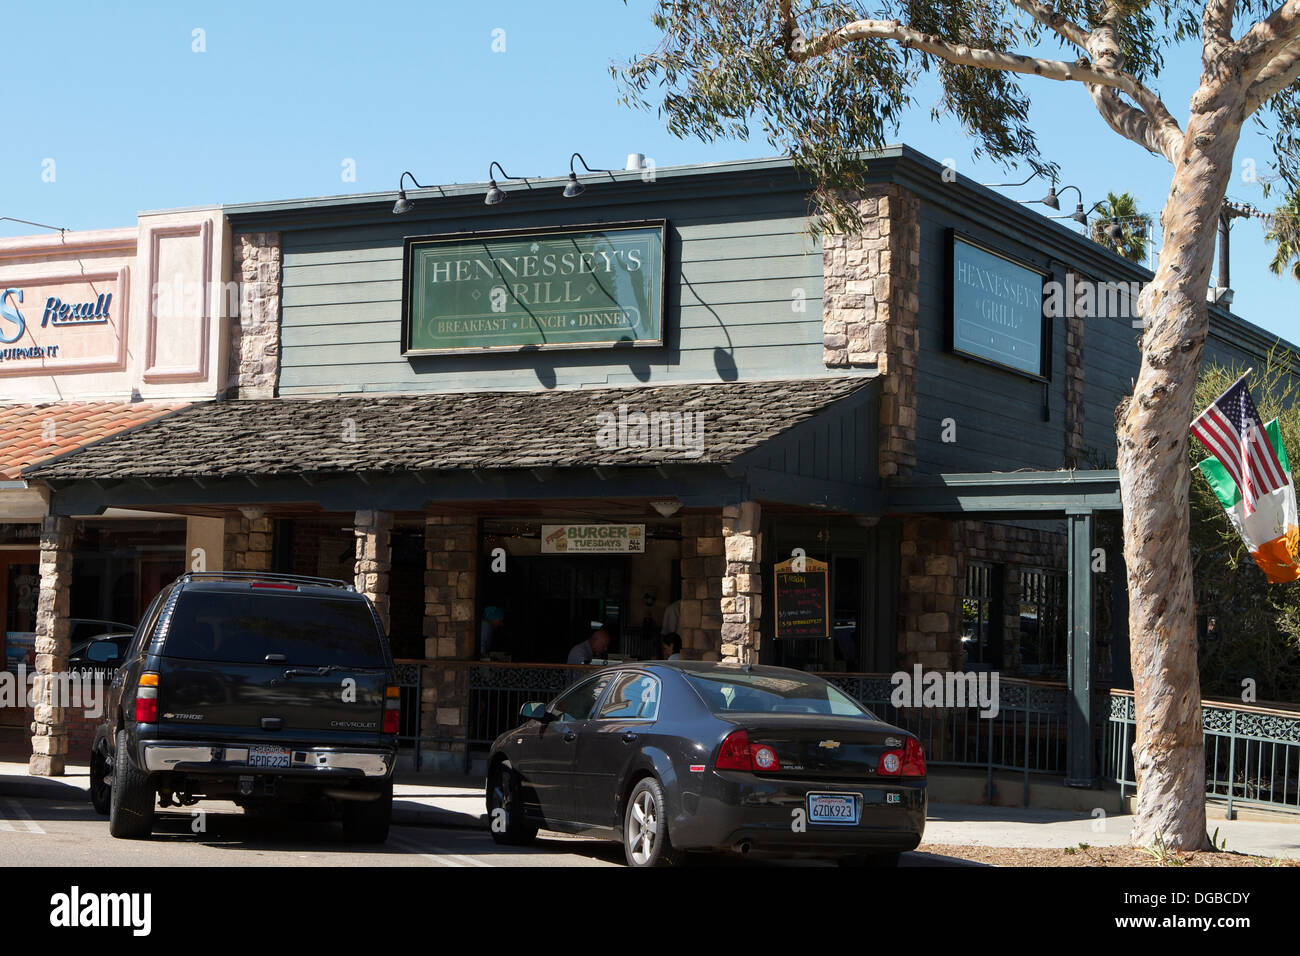 A street view of Hennessey's Grill, Main Street Seal Beach California. A part of HENNESSEY'S TAVERN,INC founded in 1976 by Paul - Stock Image